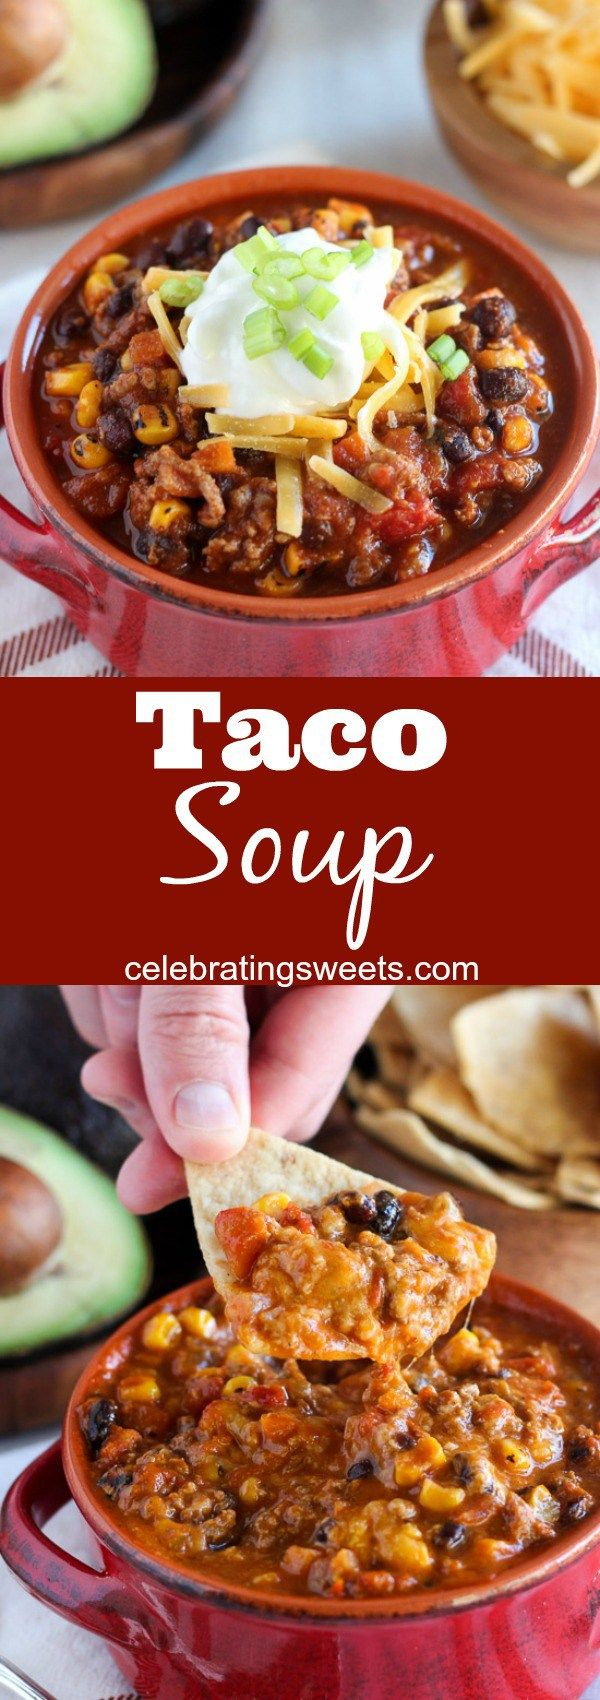 Taco Soup - All the flavors of a taco in an easy and flavorful one-pot soup. Top with your favorite taco toppings!: